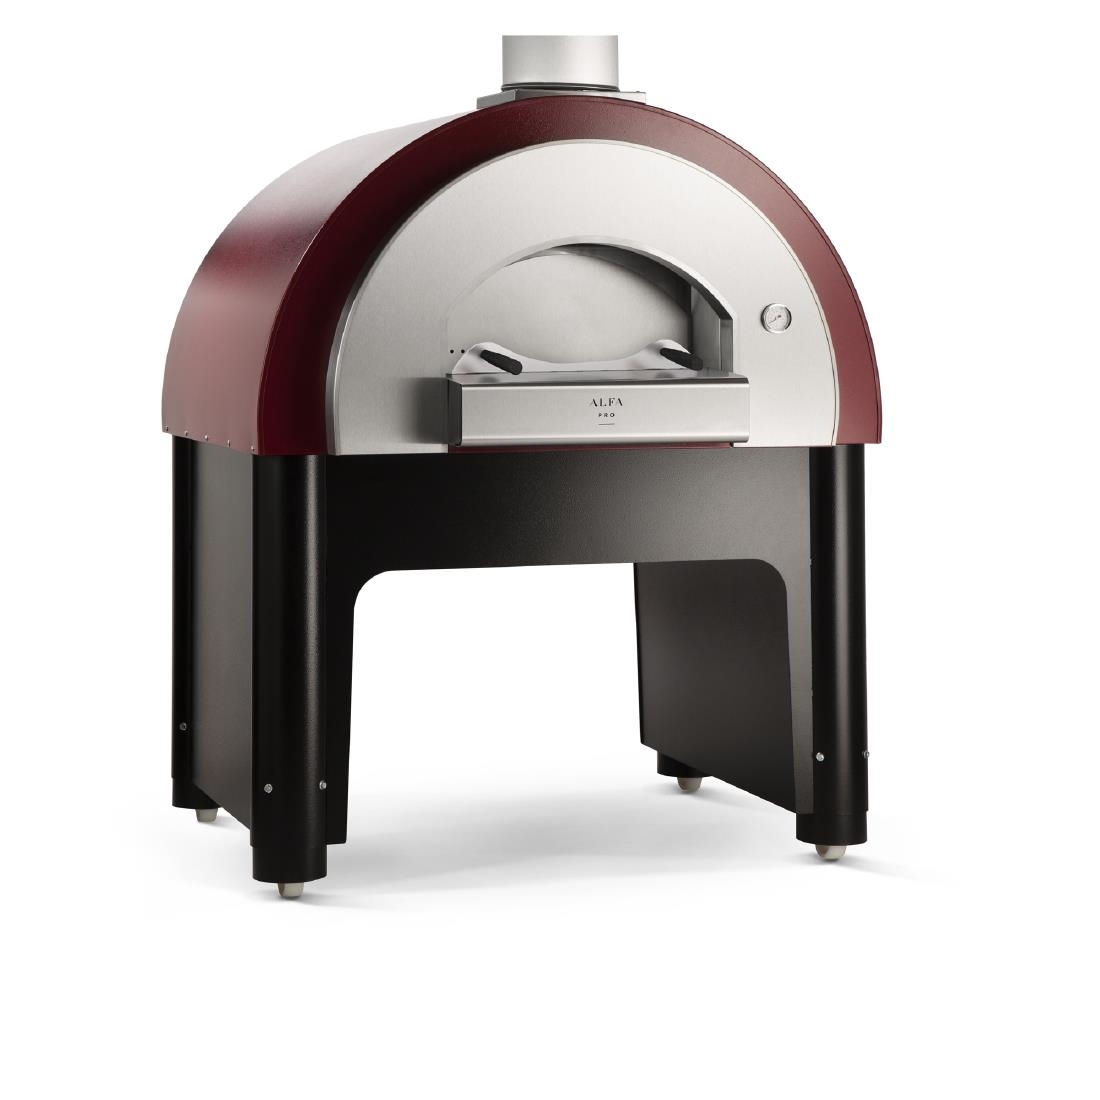 Image of Alfa Quick Pro Wood Fired Pizza Oven with Base FXQUIU-LROA